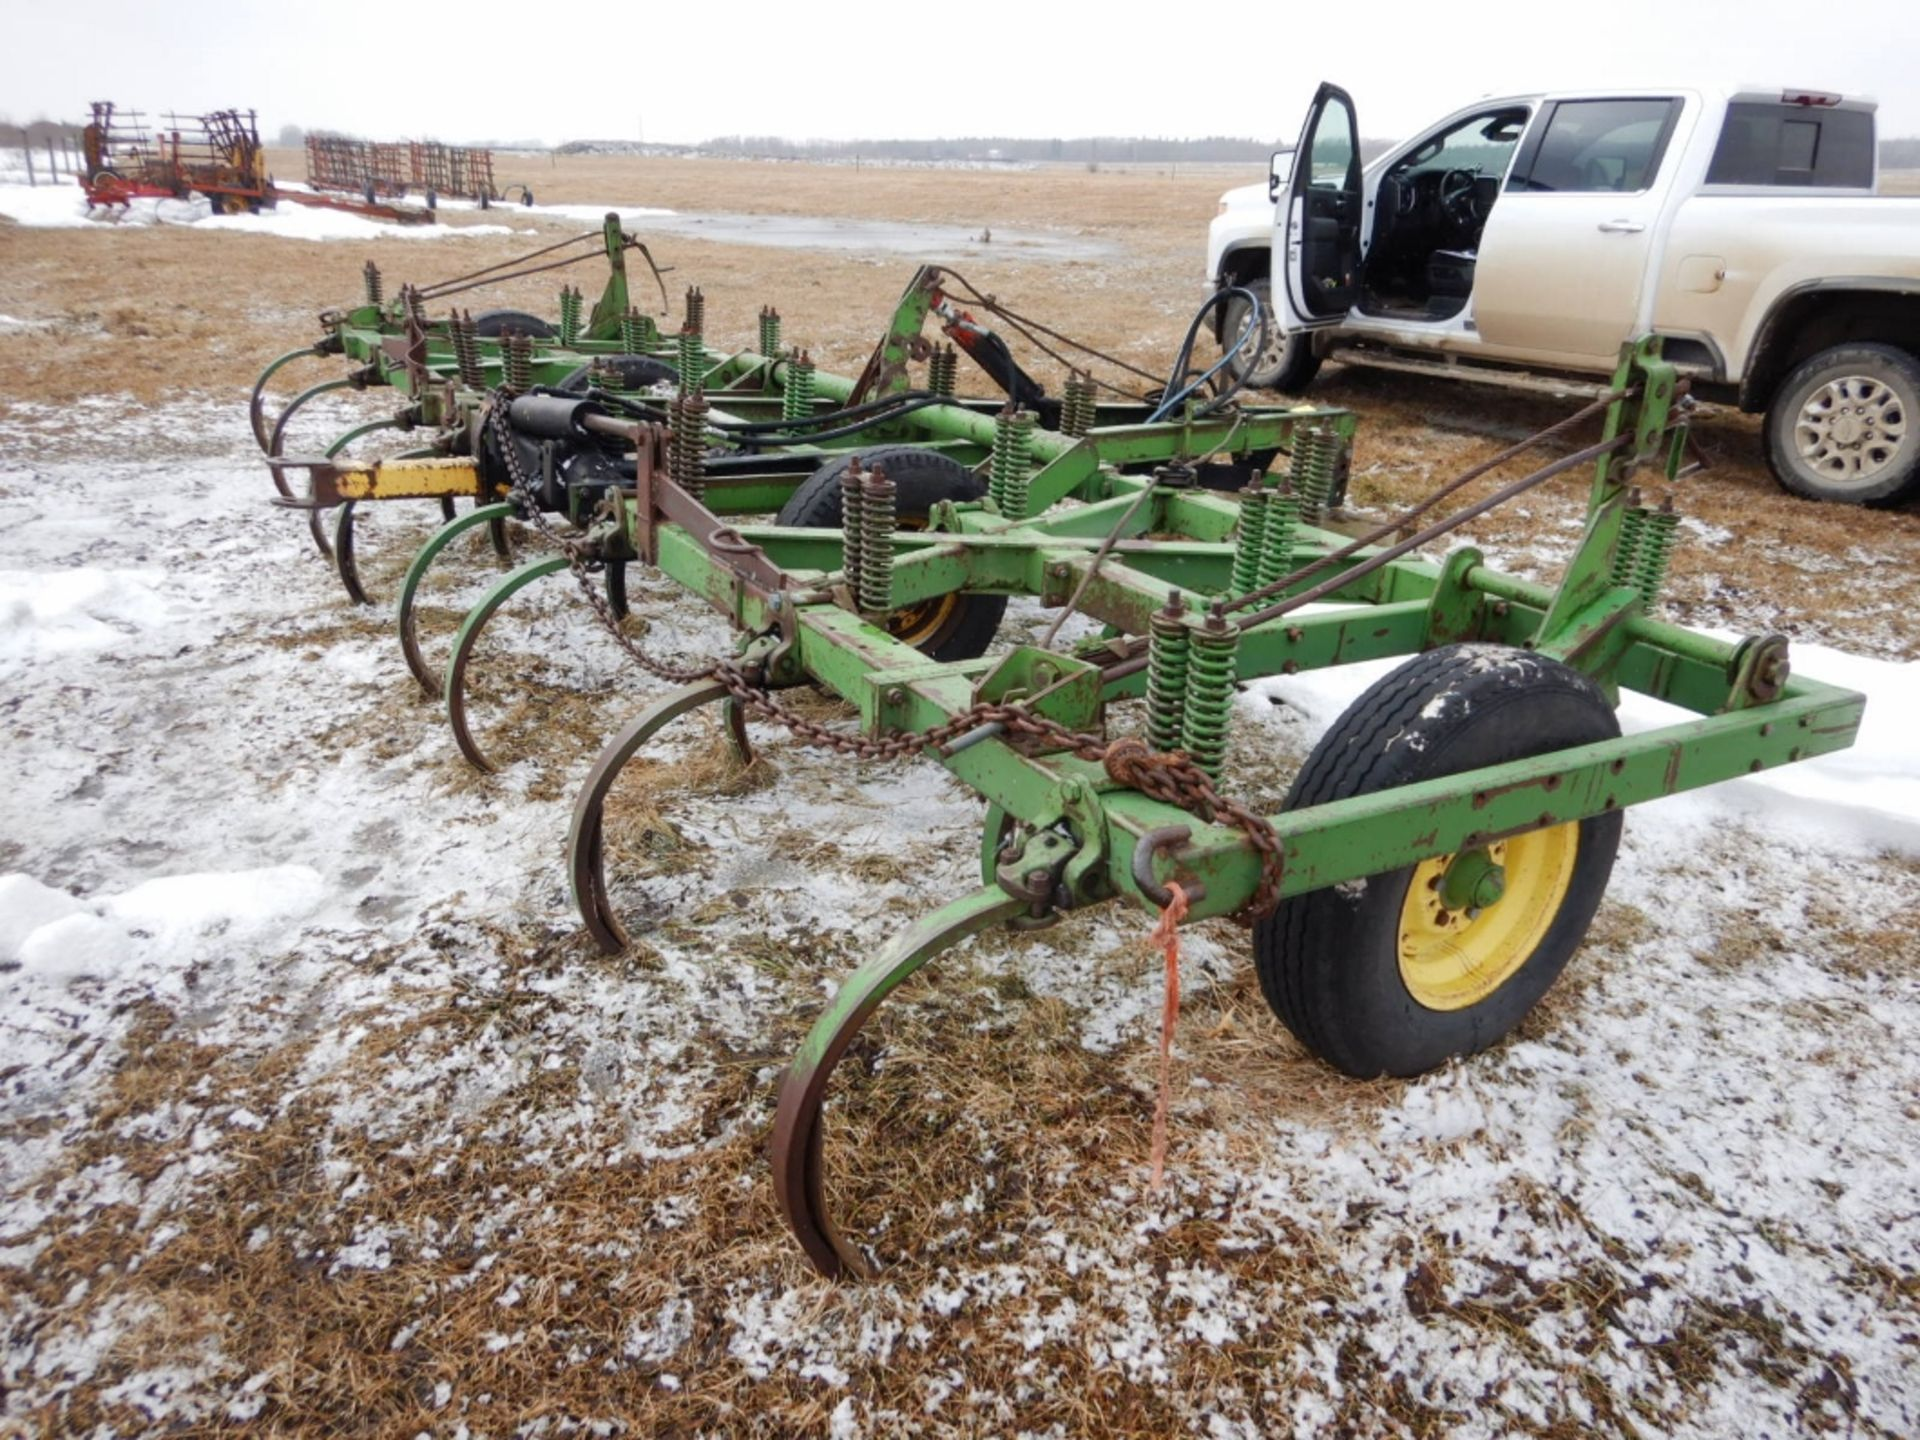 JD 18 FT DEEP TILLAGE CULTIVATOR W/SPIKES - Image 2 of 4